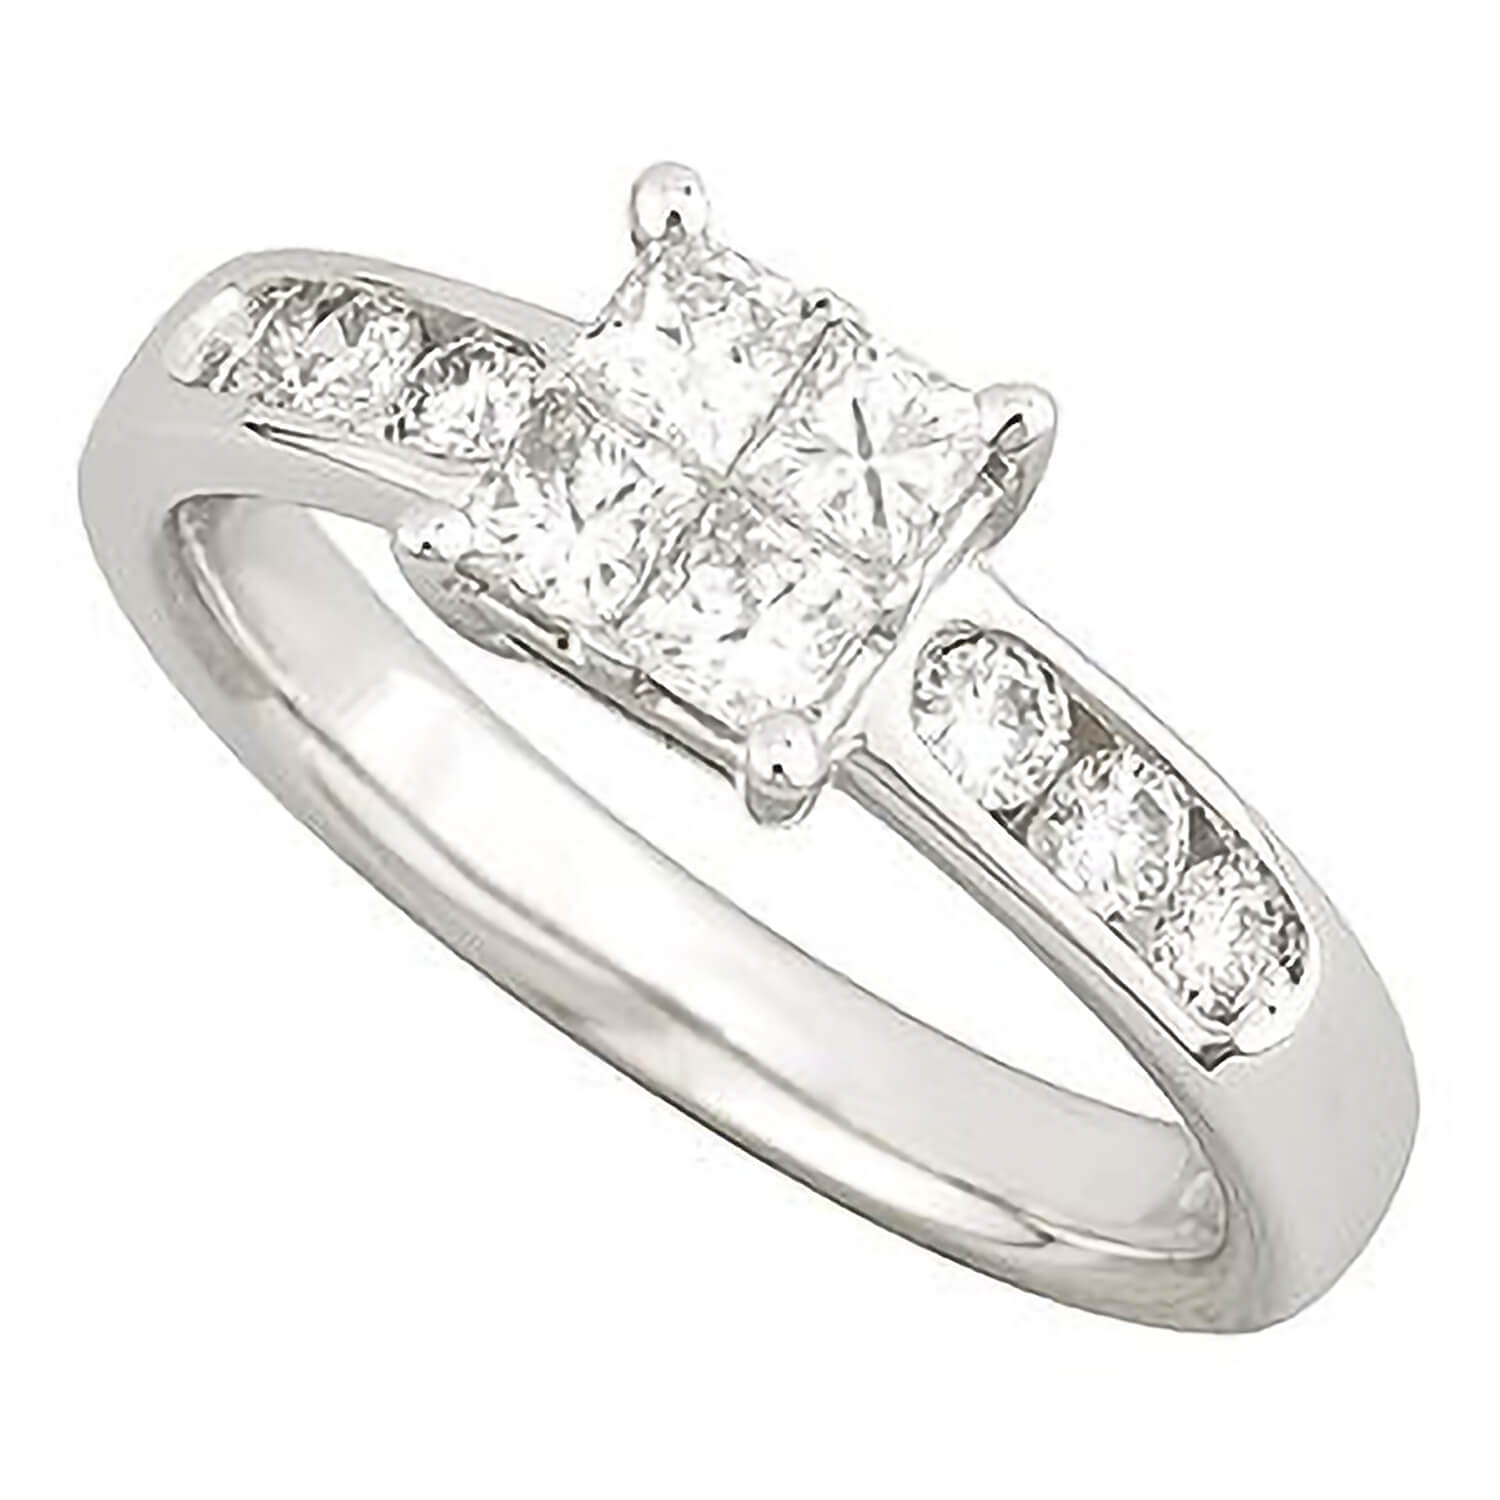 18ct white gold 0.70 carat princess cut diamond ring